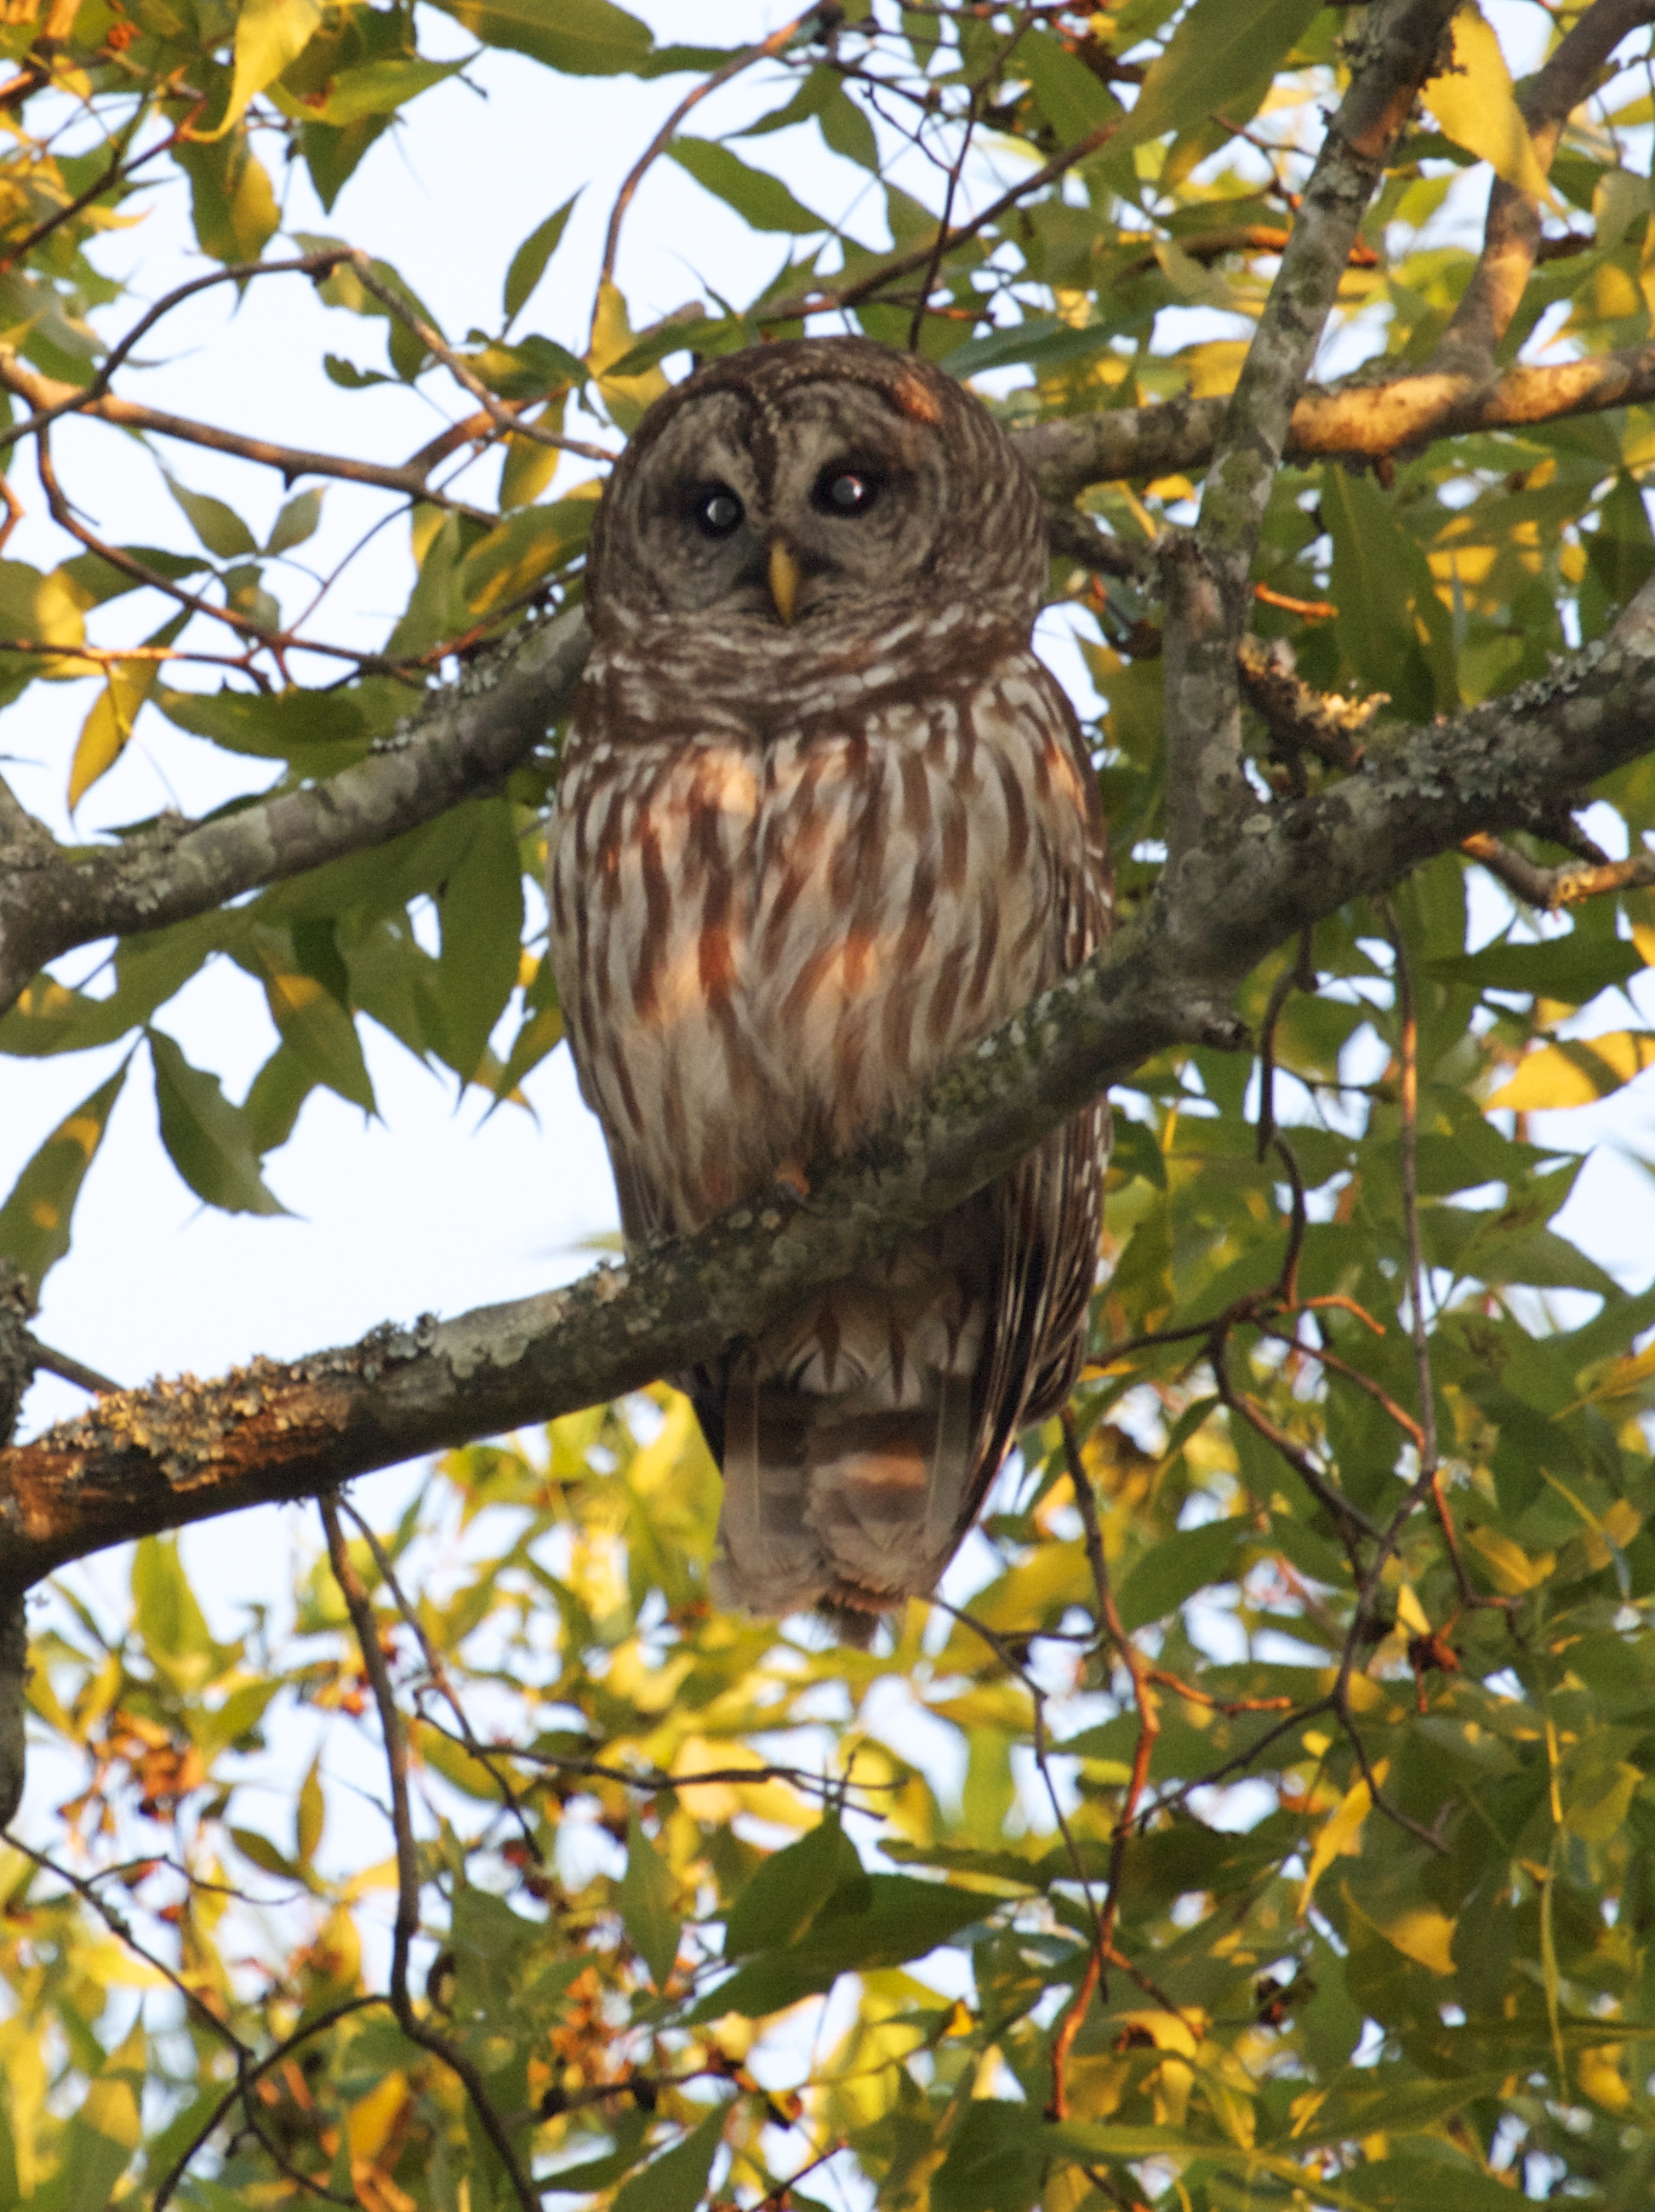 Adult Barred Owl peers down from the tree and gets caught by my flash on the camera.